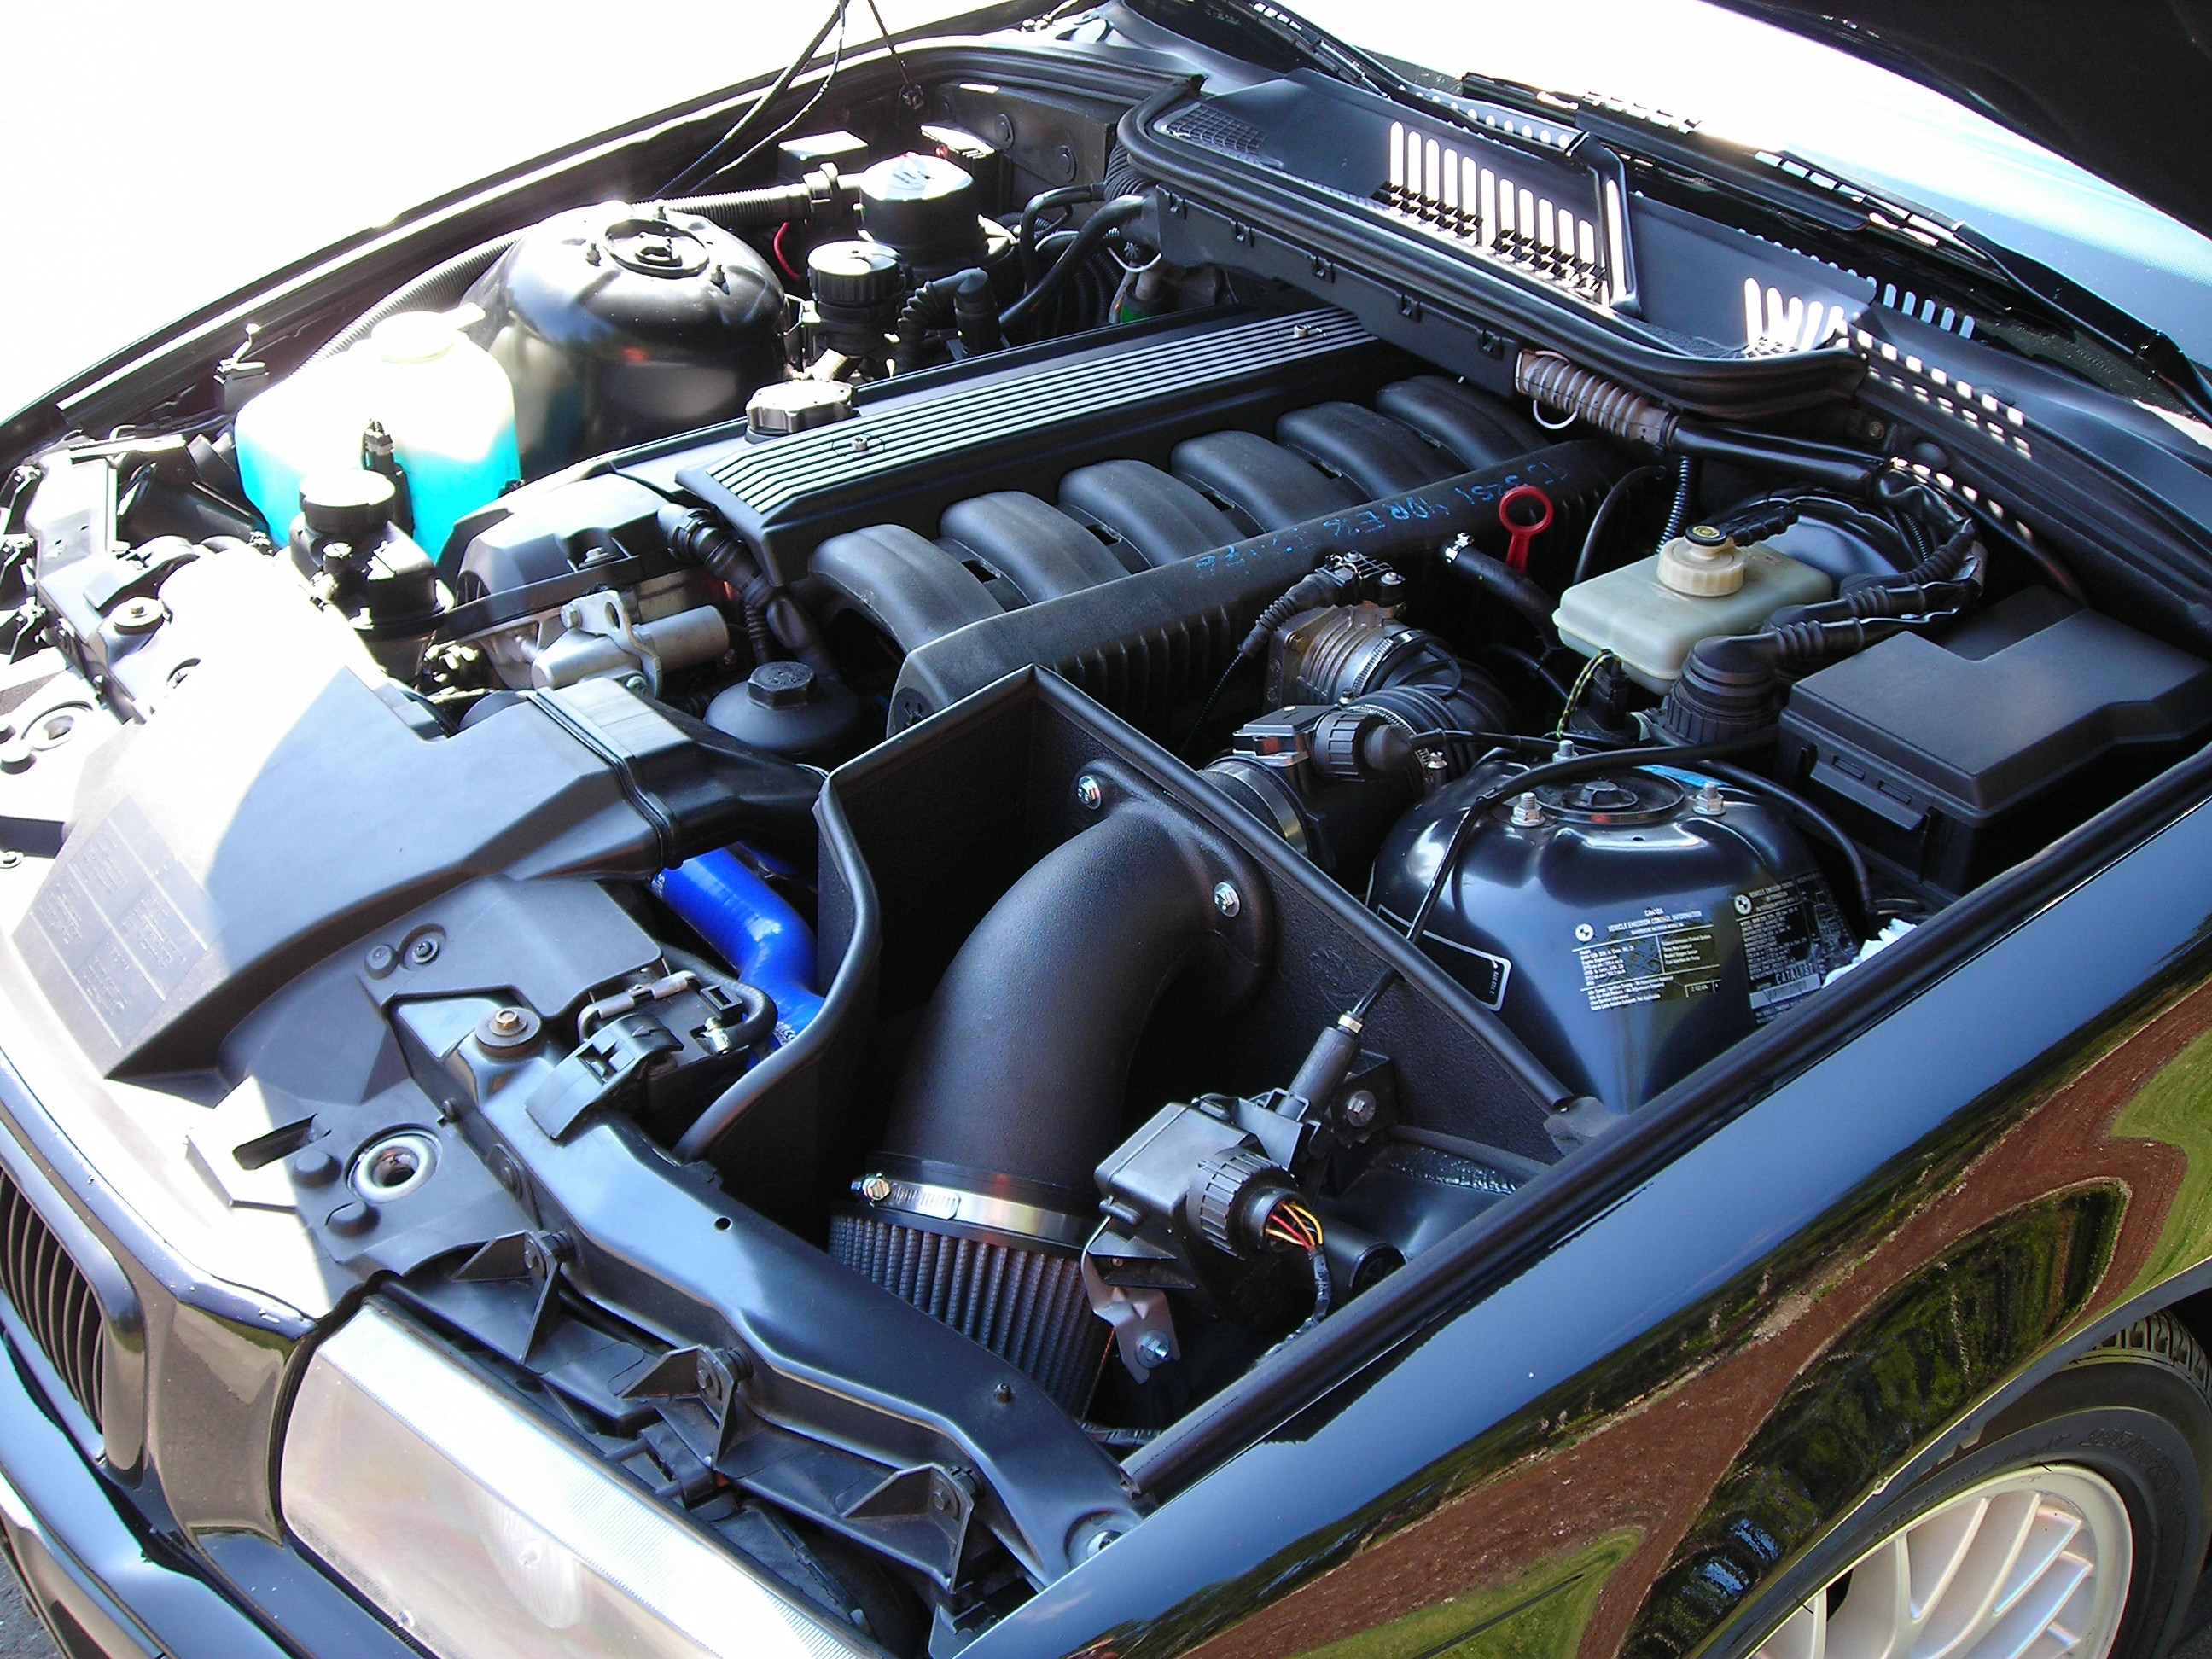 Bmw Z3 2 8 Engine Bay Diagram Wiring Diagrams Instructions Of 1998 Marine3 3 Series328is Coupe 2d Specs Photos Modification Series